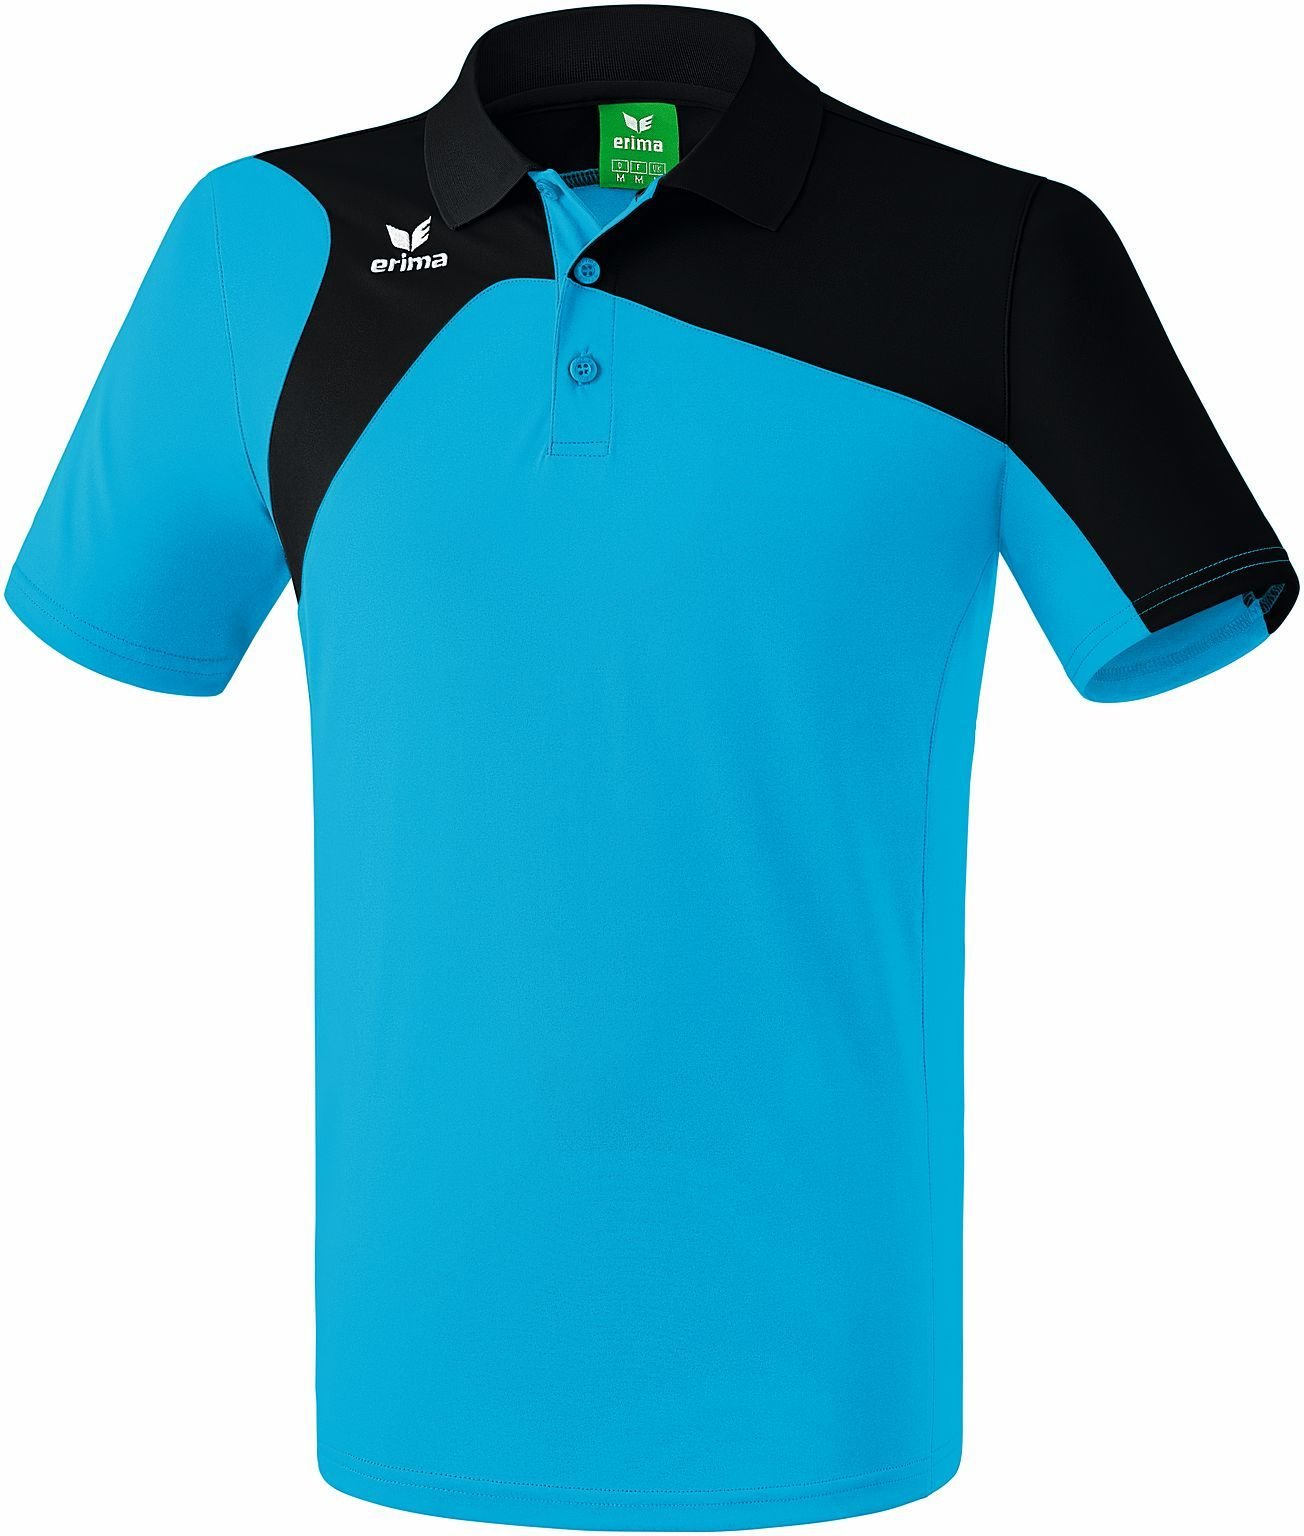 Club 1900 2.0 Polo in 10 Farben ak1110711